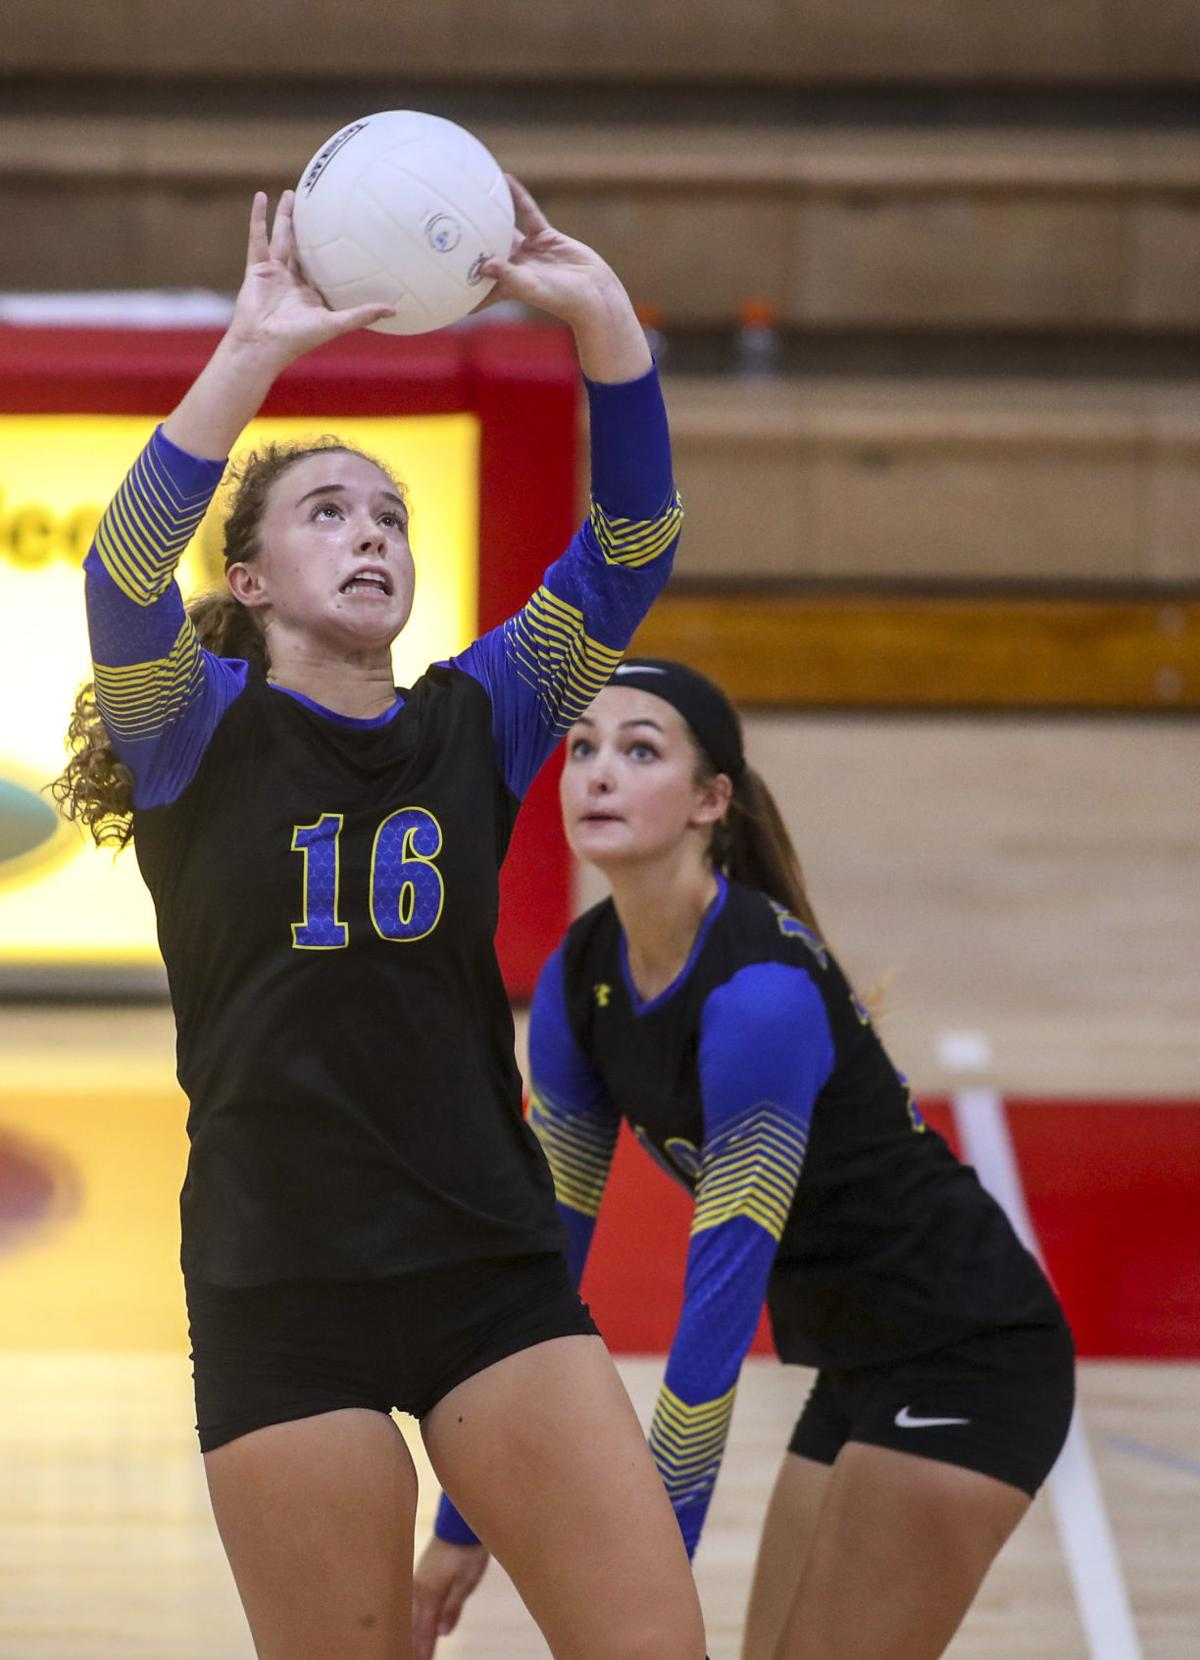 090418-north-west-volleyball-025